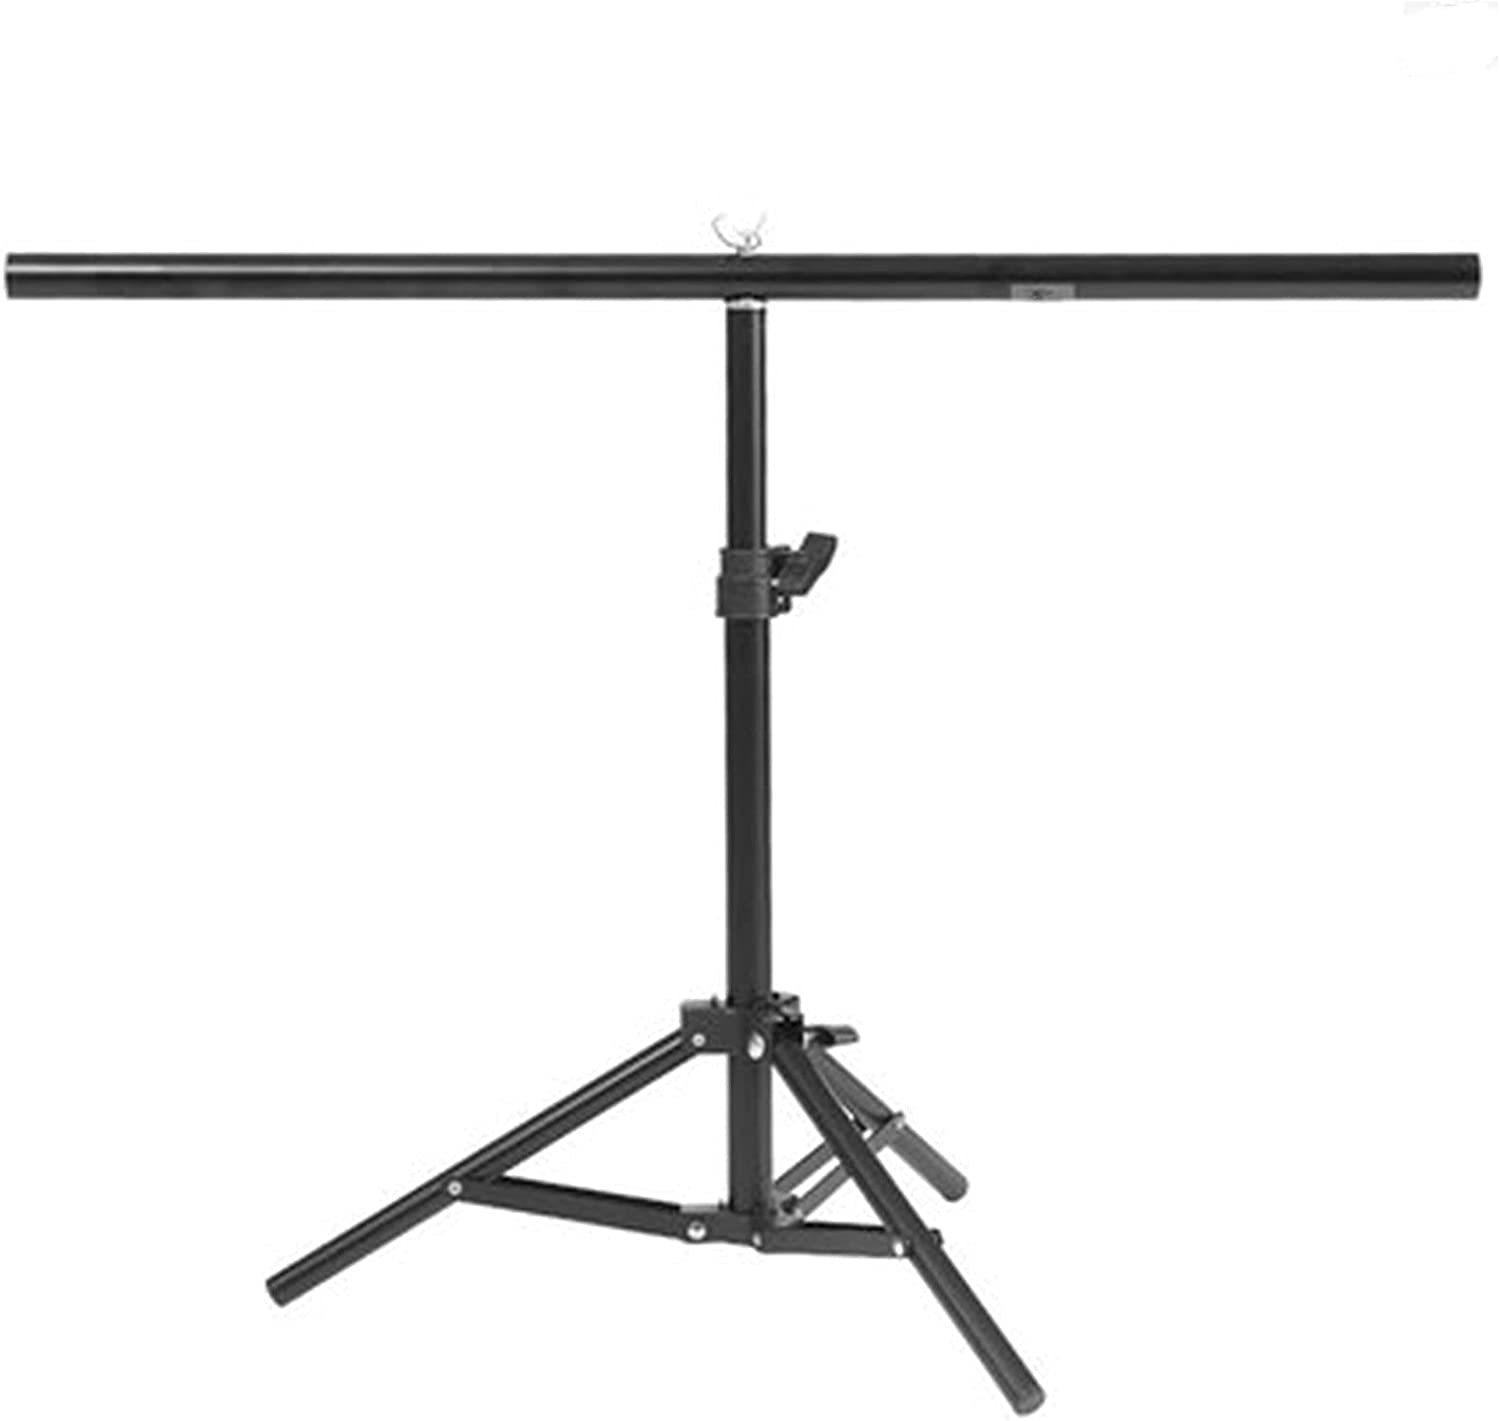 Photography Light New sales Stand Telescopic Outdoor Max 74% OFF Fra Background Studio